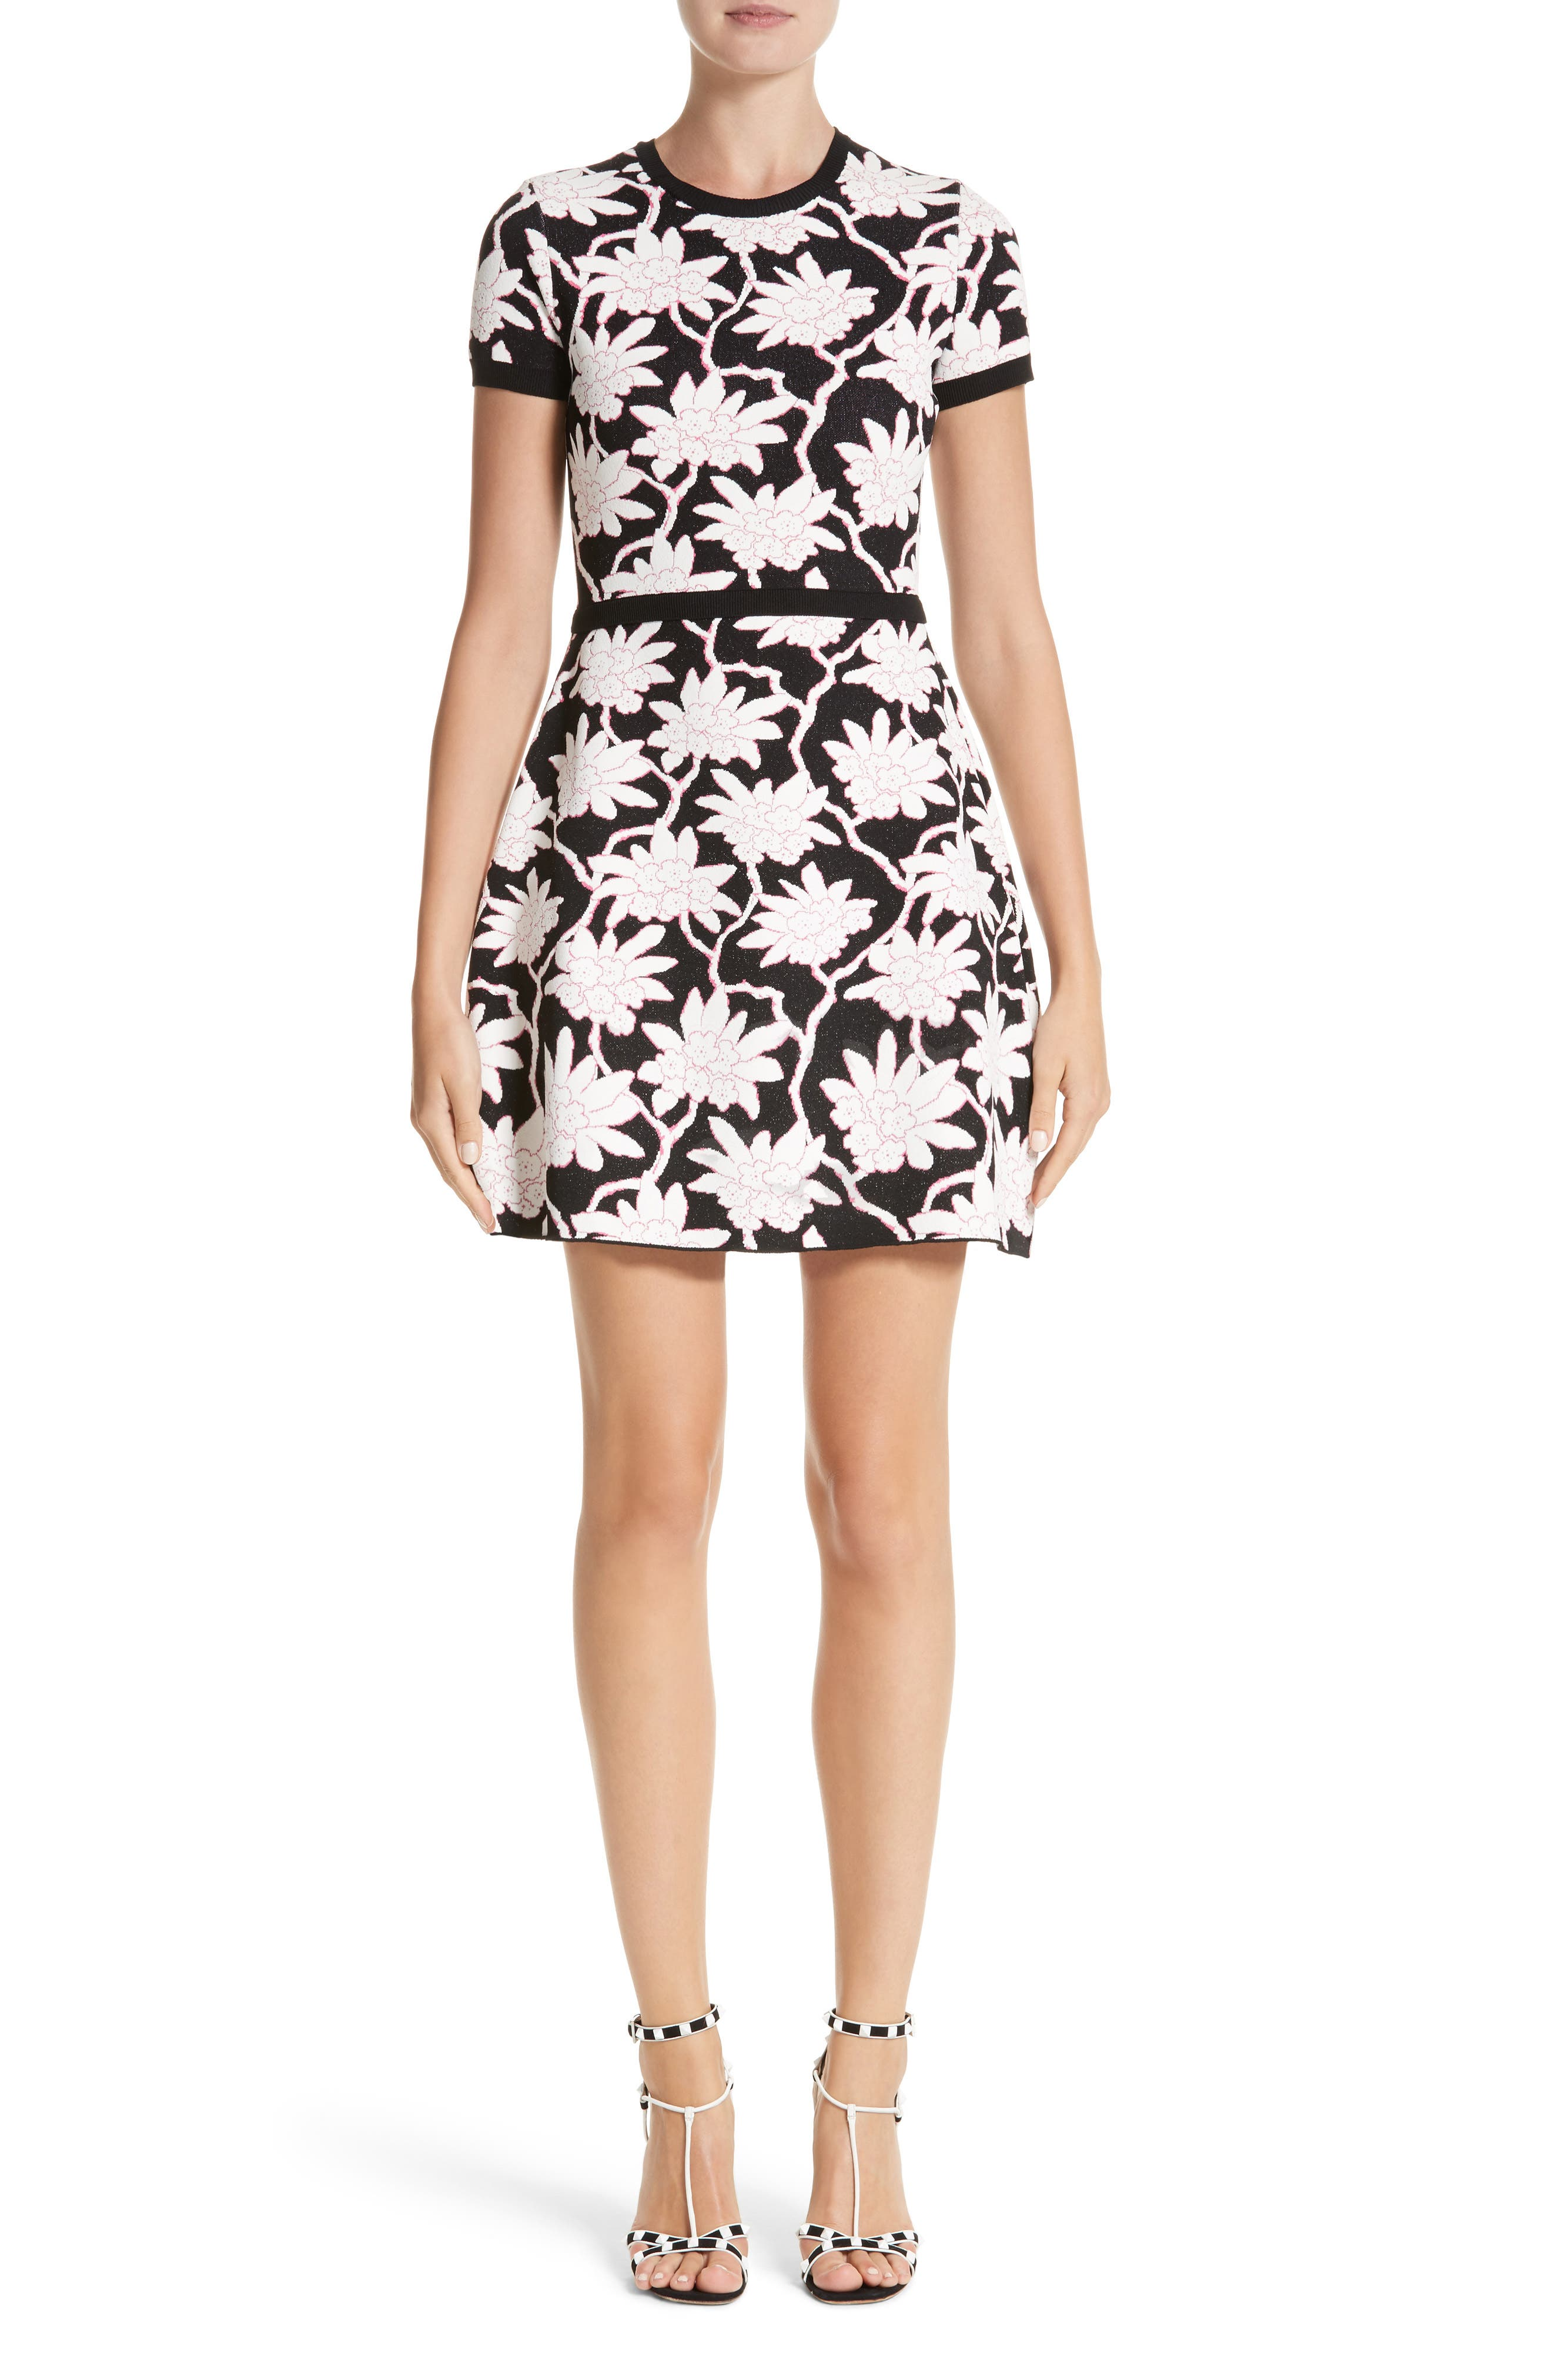 Rhododendron Jacquard Dress,                         Main,                         color, Black